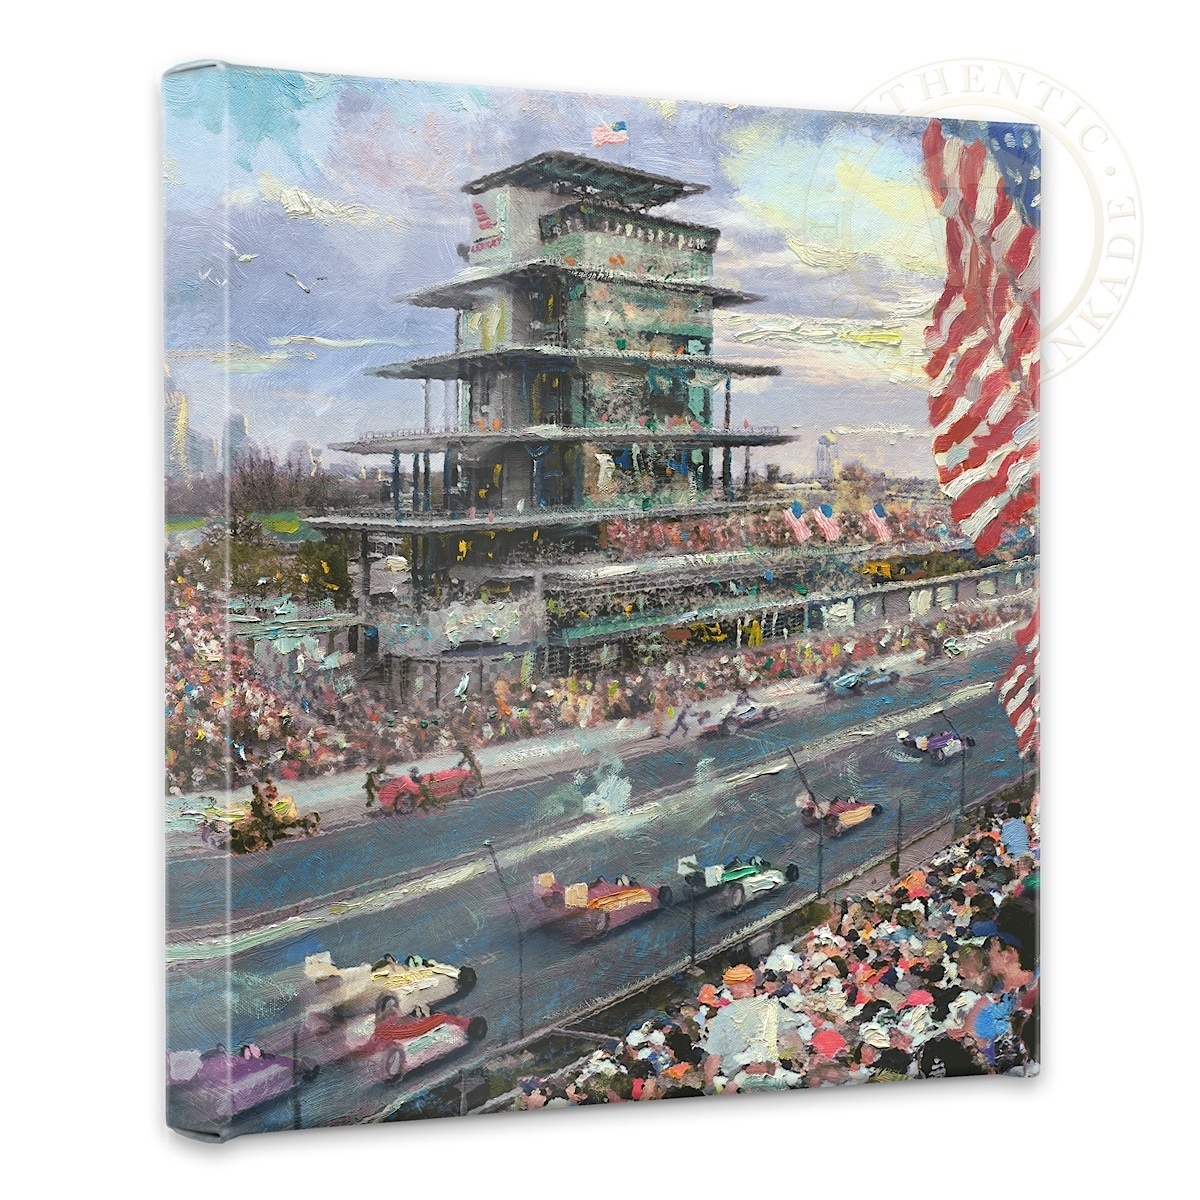 "Indianapolis Motor Speedway, 100th Anniversary Study - 14"" x 14"" Gallery Wrapped Canvas"